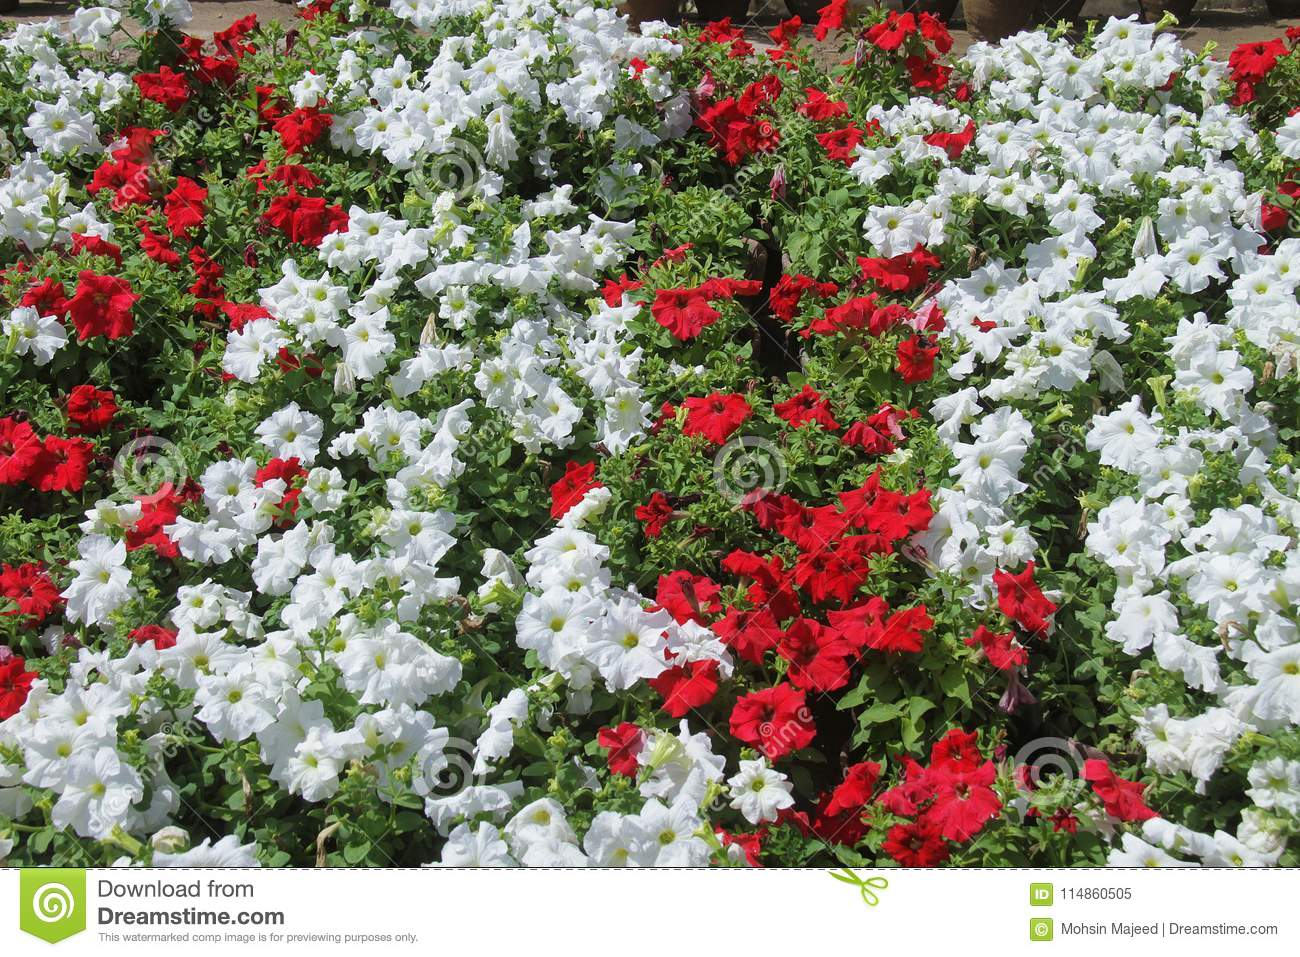 Flowers for background beautiful stock image image of glitter flower up close with blurred garden background beautiful spring flowers expensive flowers izmirmasajfo